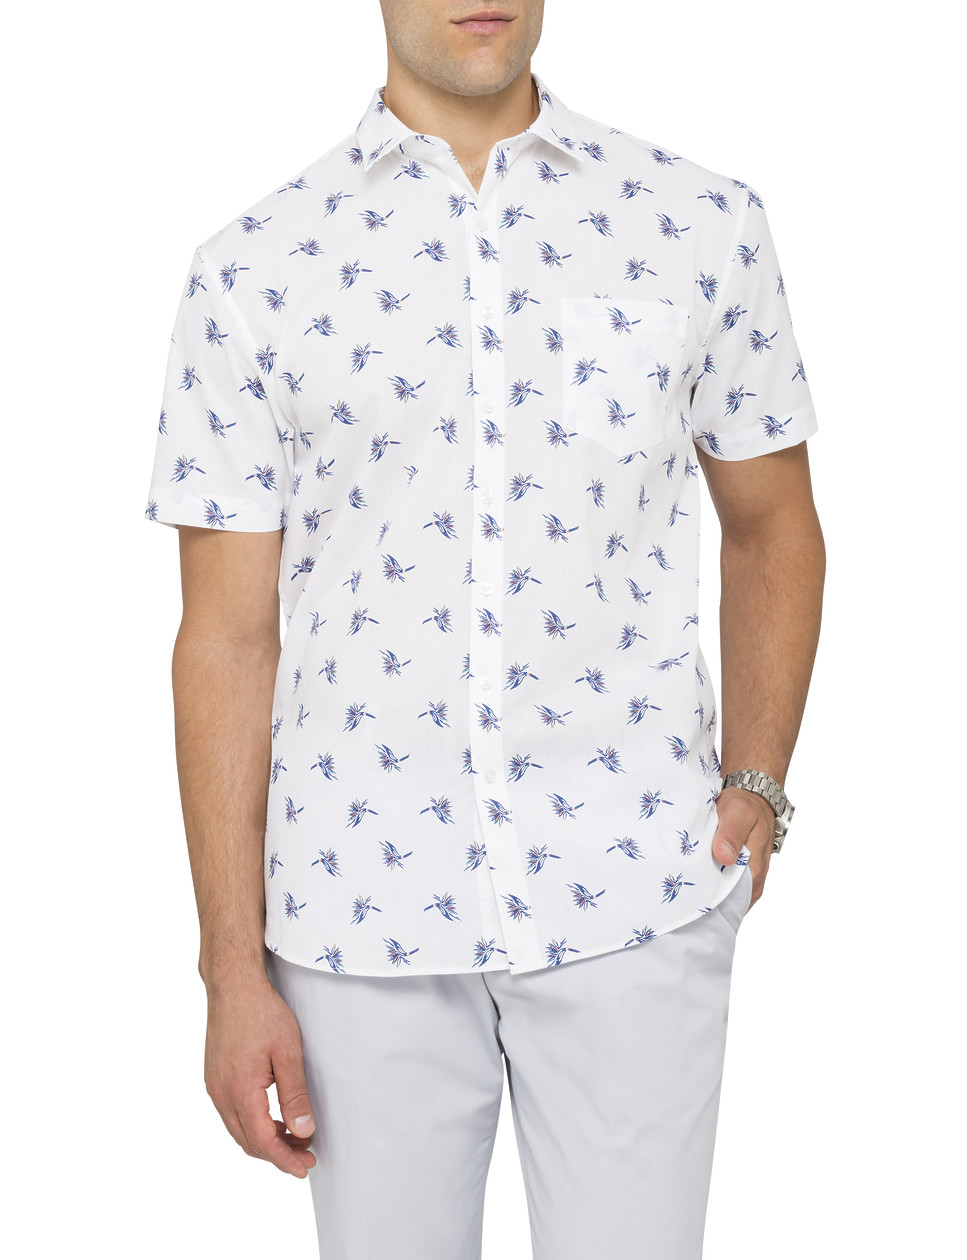 Van heusen mens casual short sleeve shirt bird print for Printed short sleeve shirts